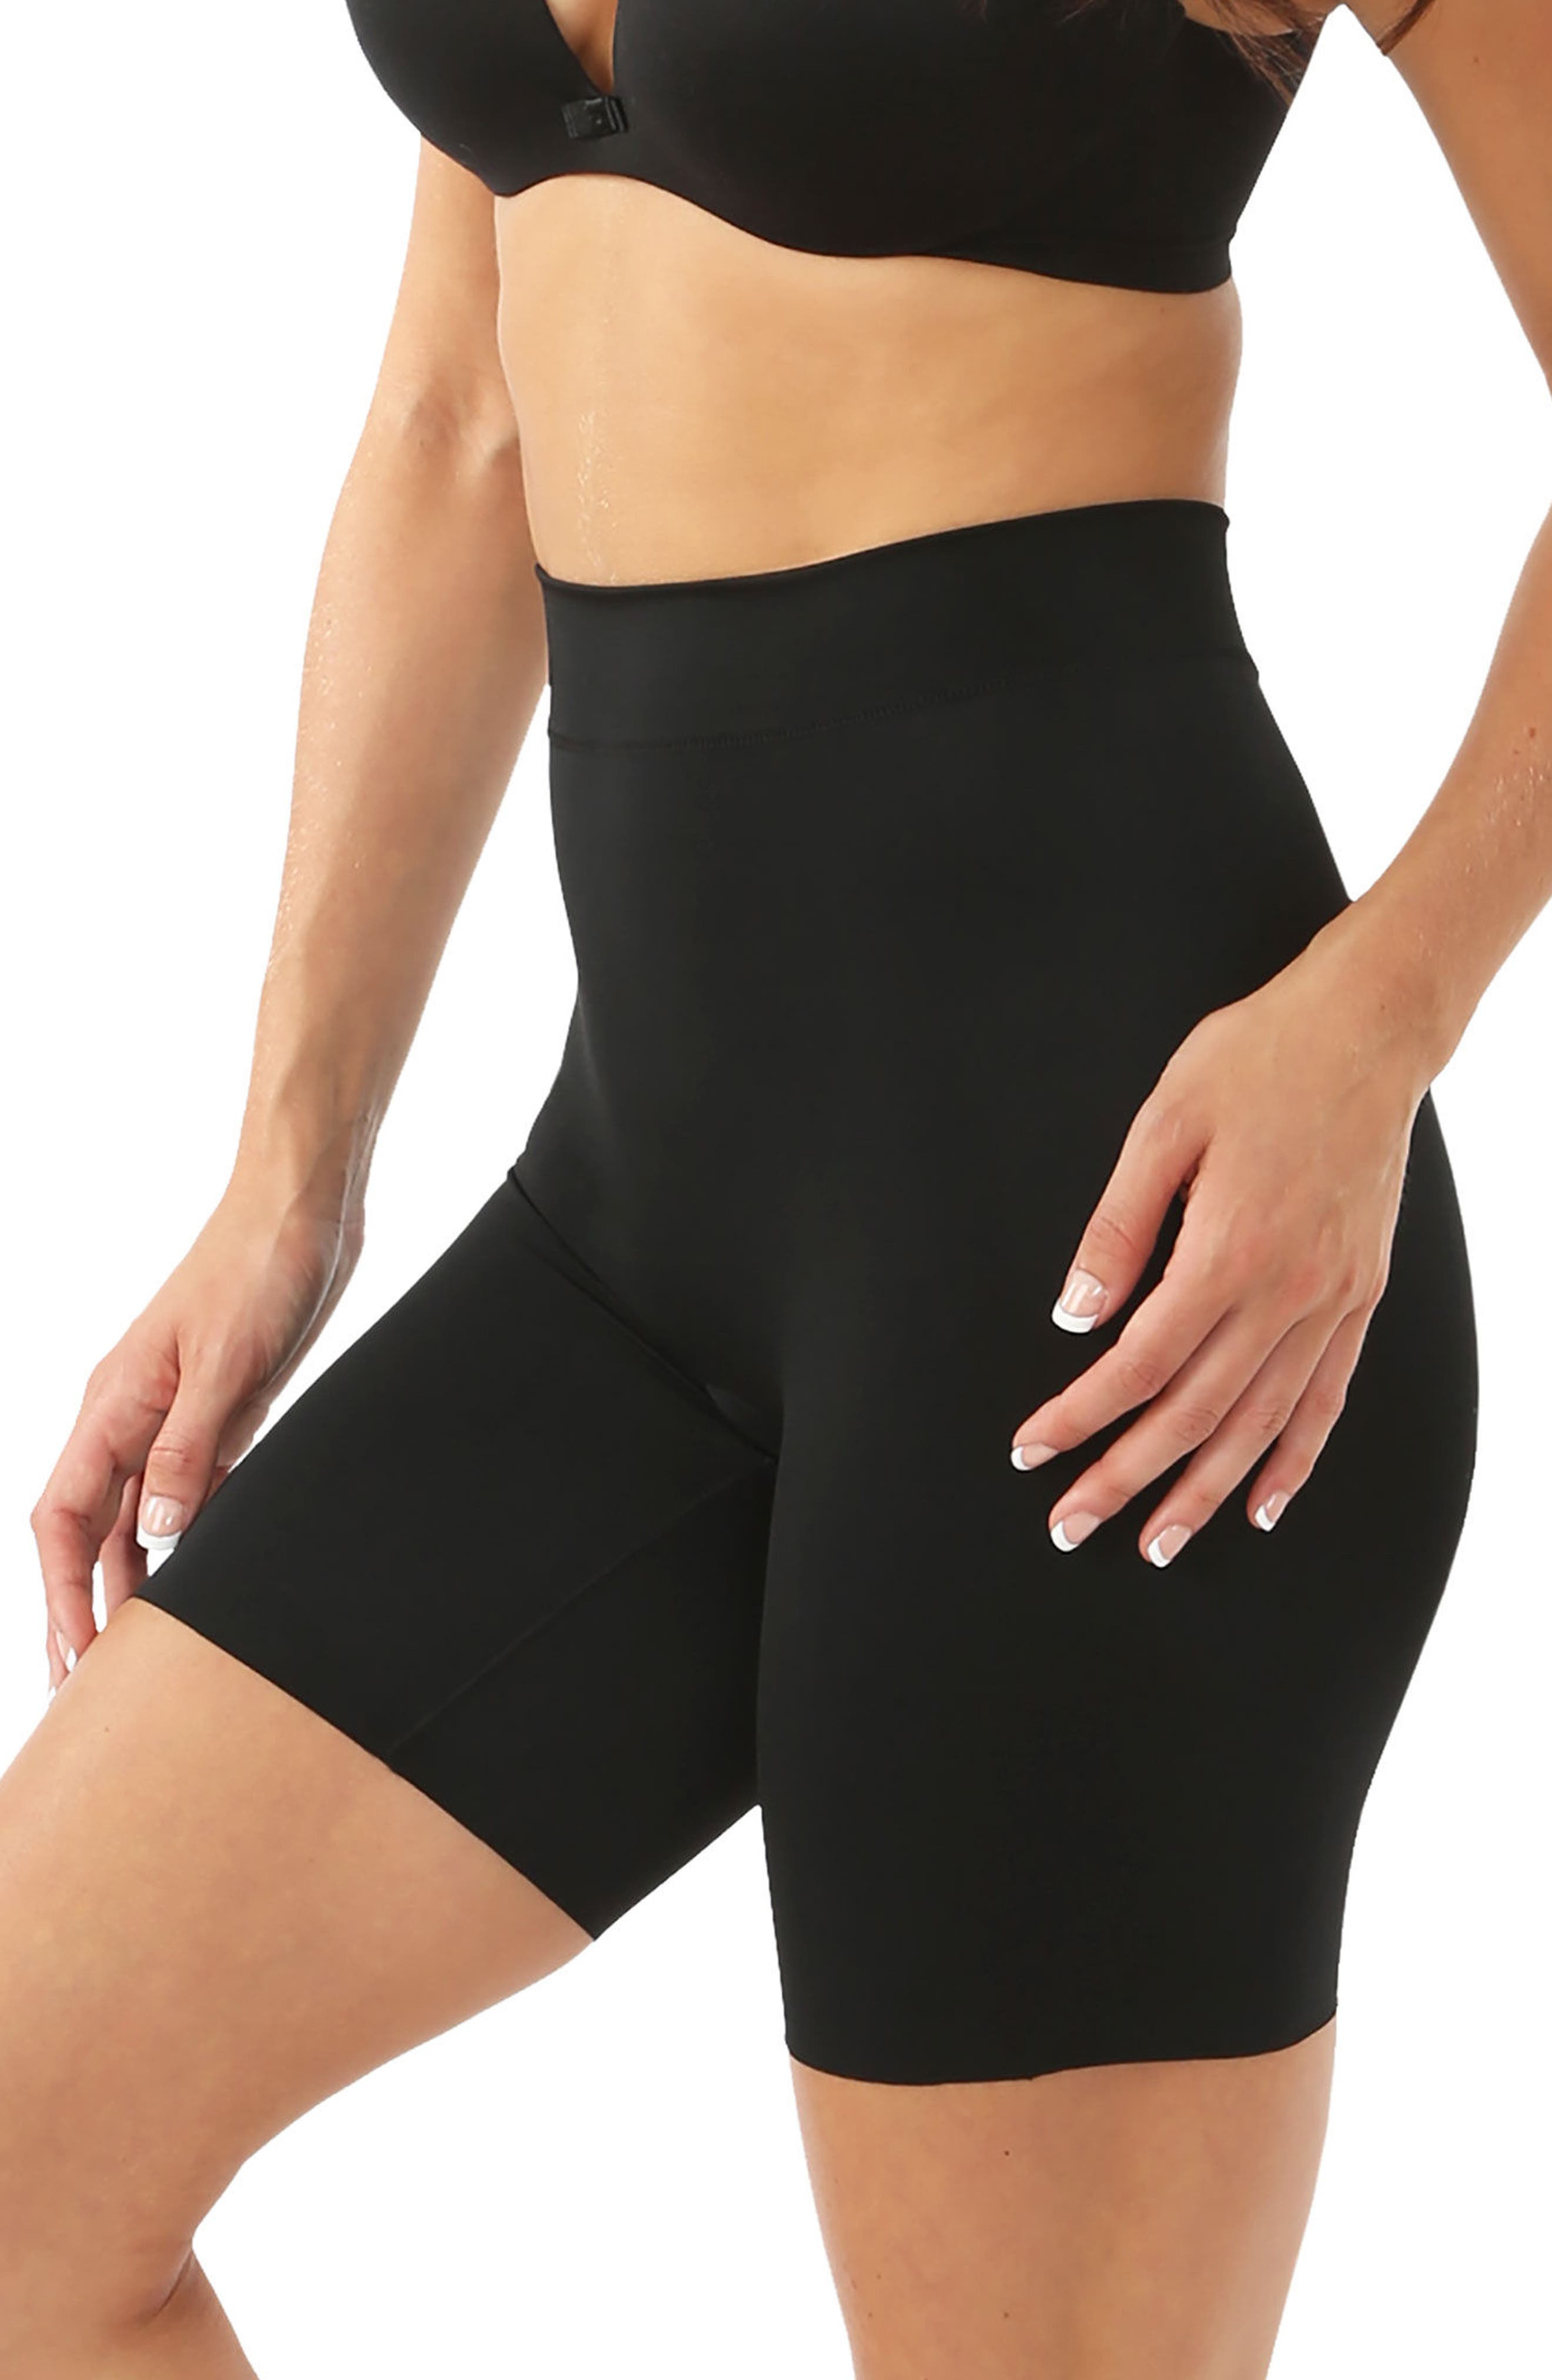 'Mother Tucker - Shortie' High Waist Compression Shorts,                             Alternate thumbnail 3, color,                             BLACK